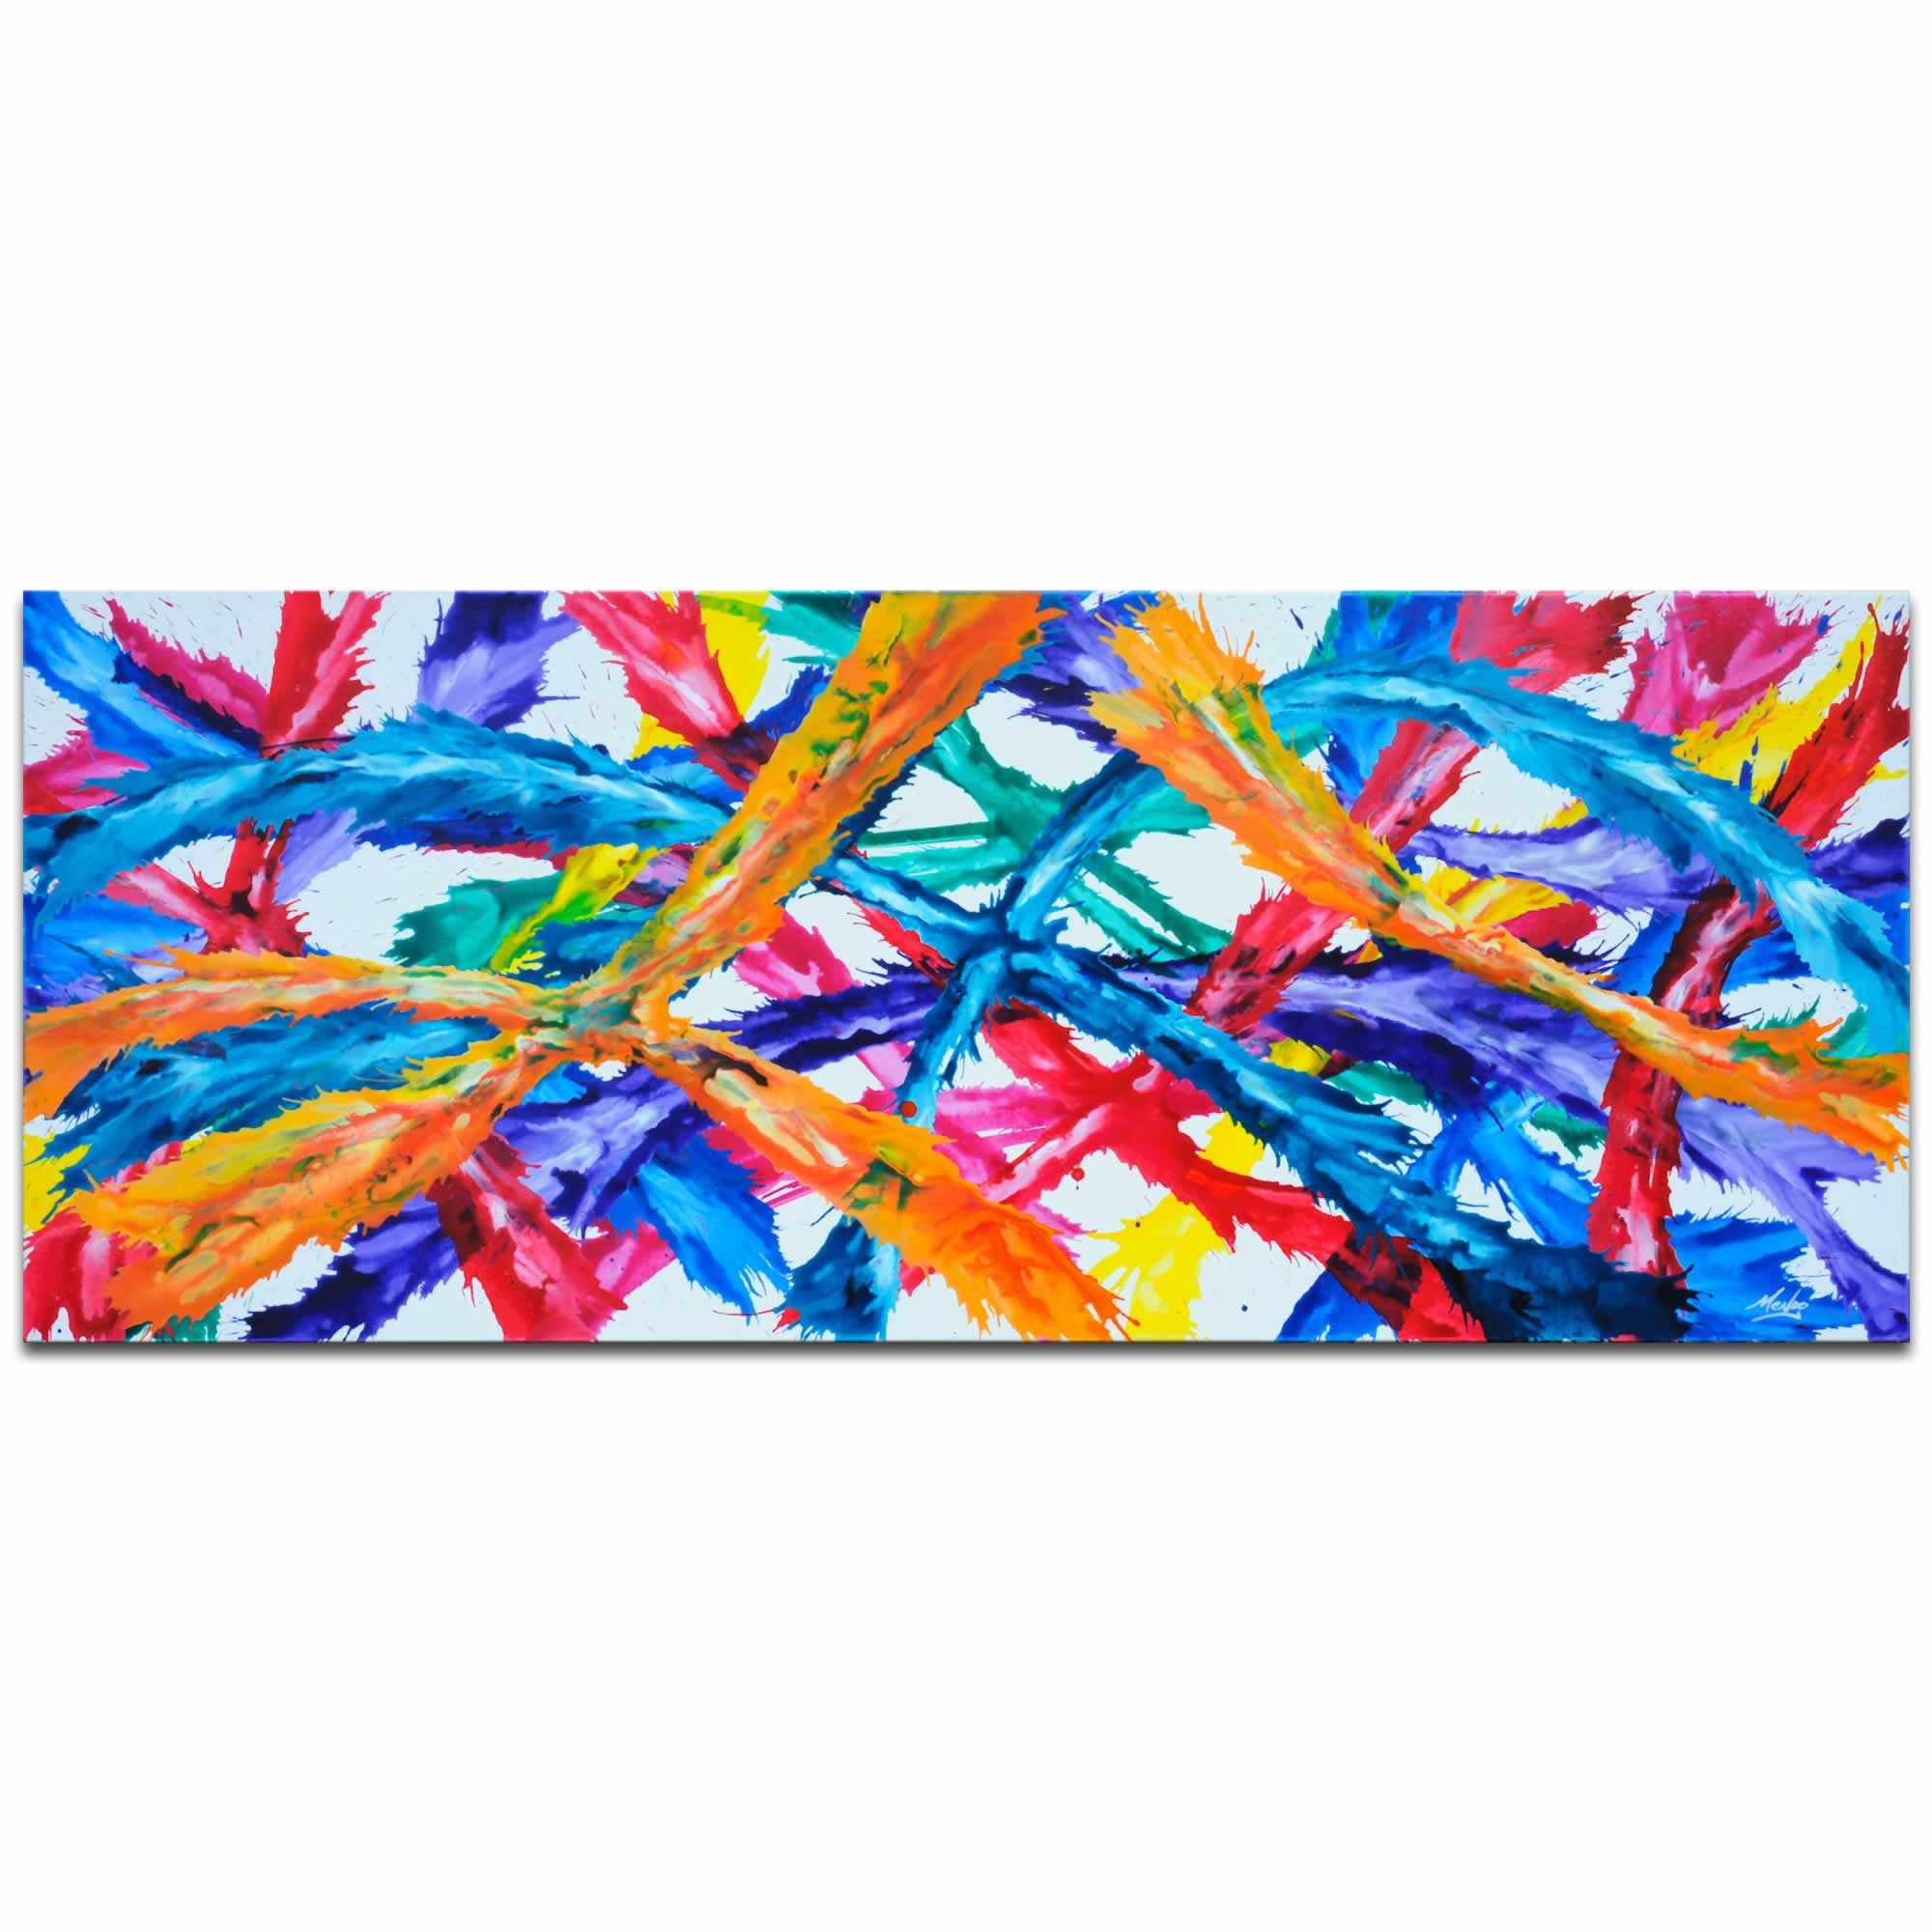 Infinite Colors Blue Orange Red White Yellow Purple Painting Modern Abstract Art Contemporary Eclectic Decor